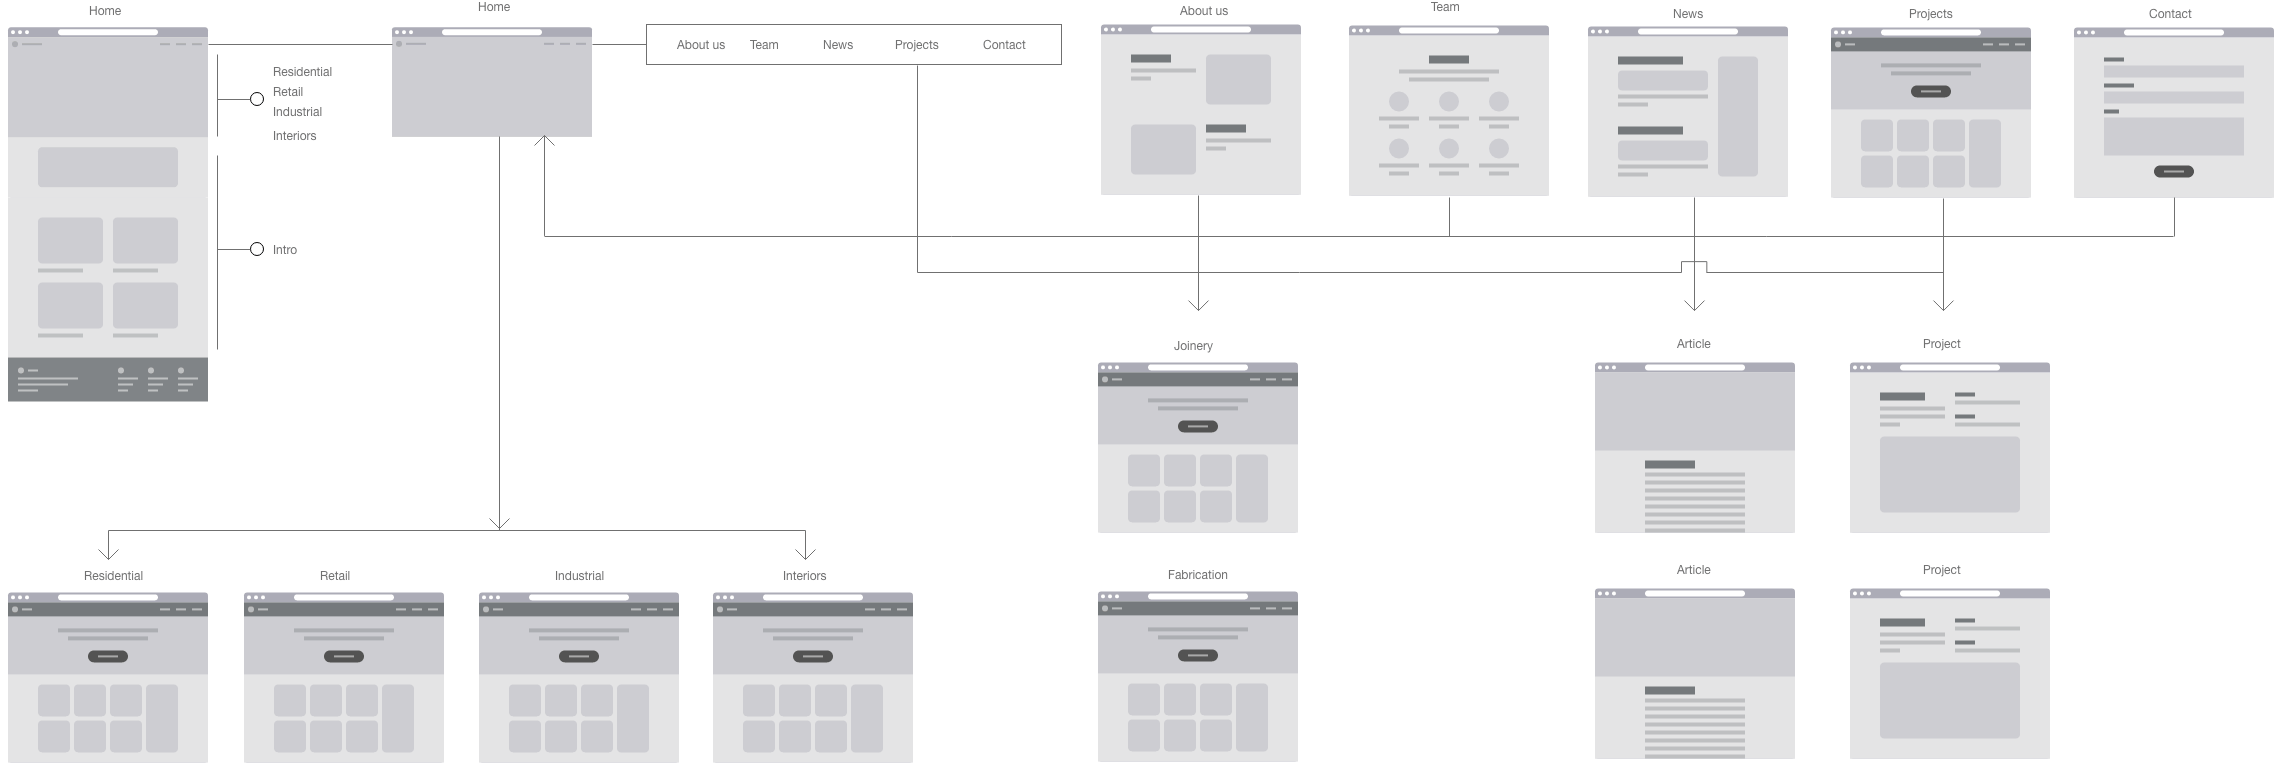 ZGI website sitemap defining page hierarchy and structure